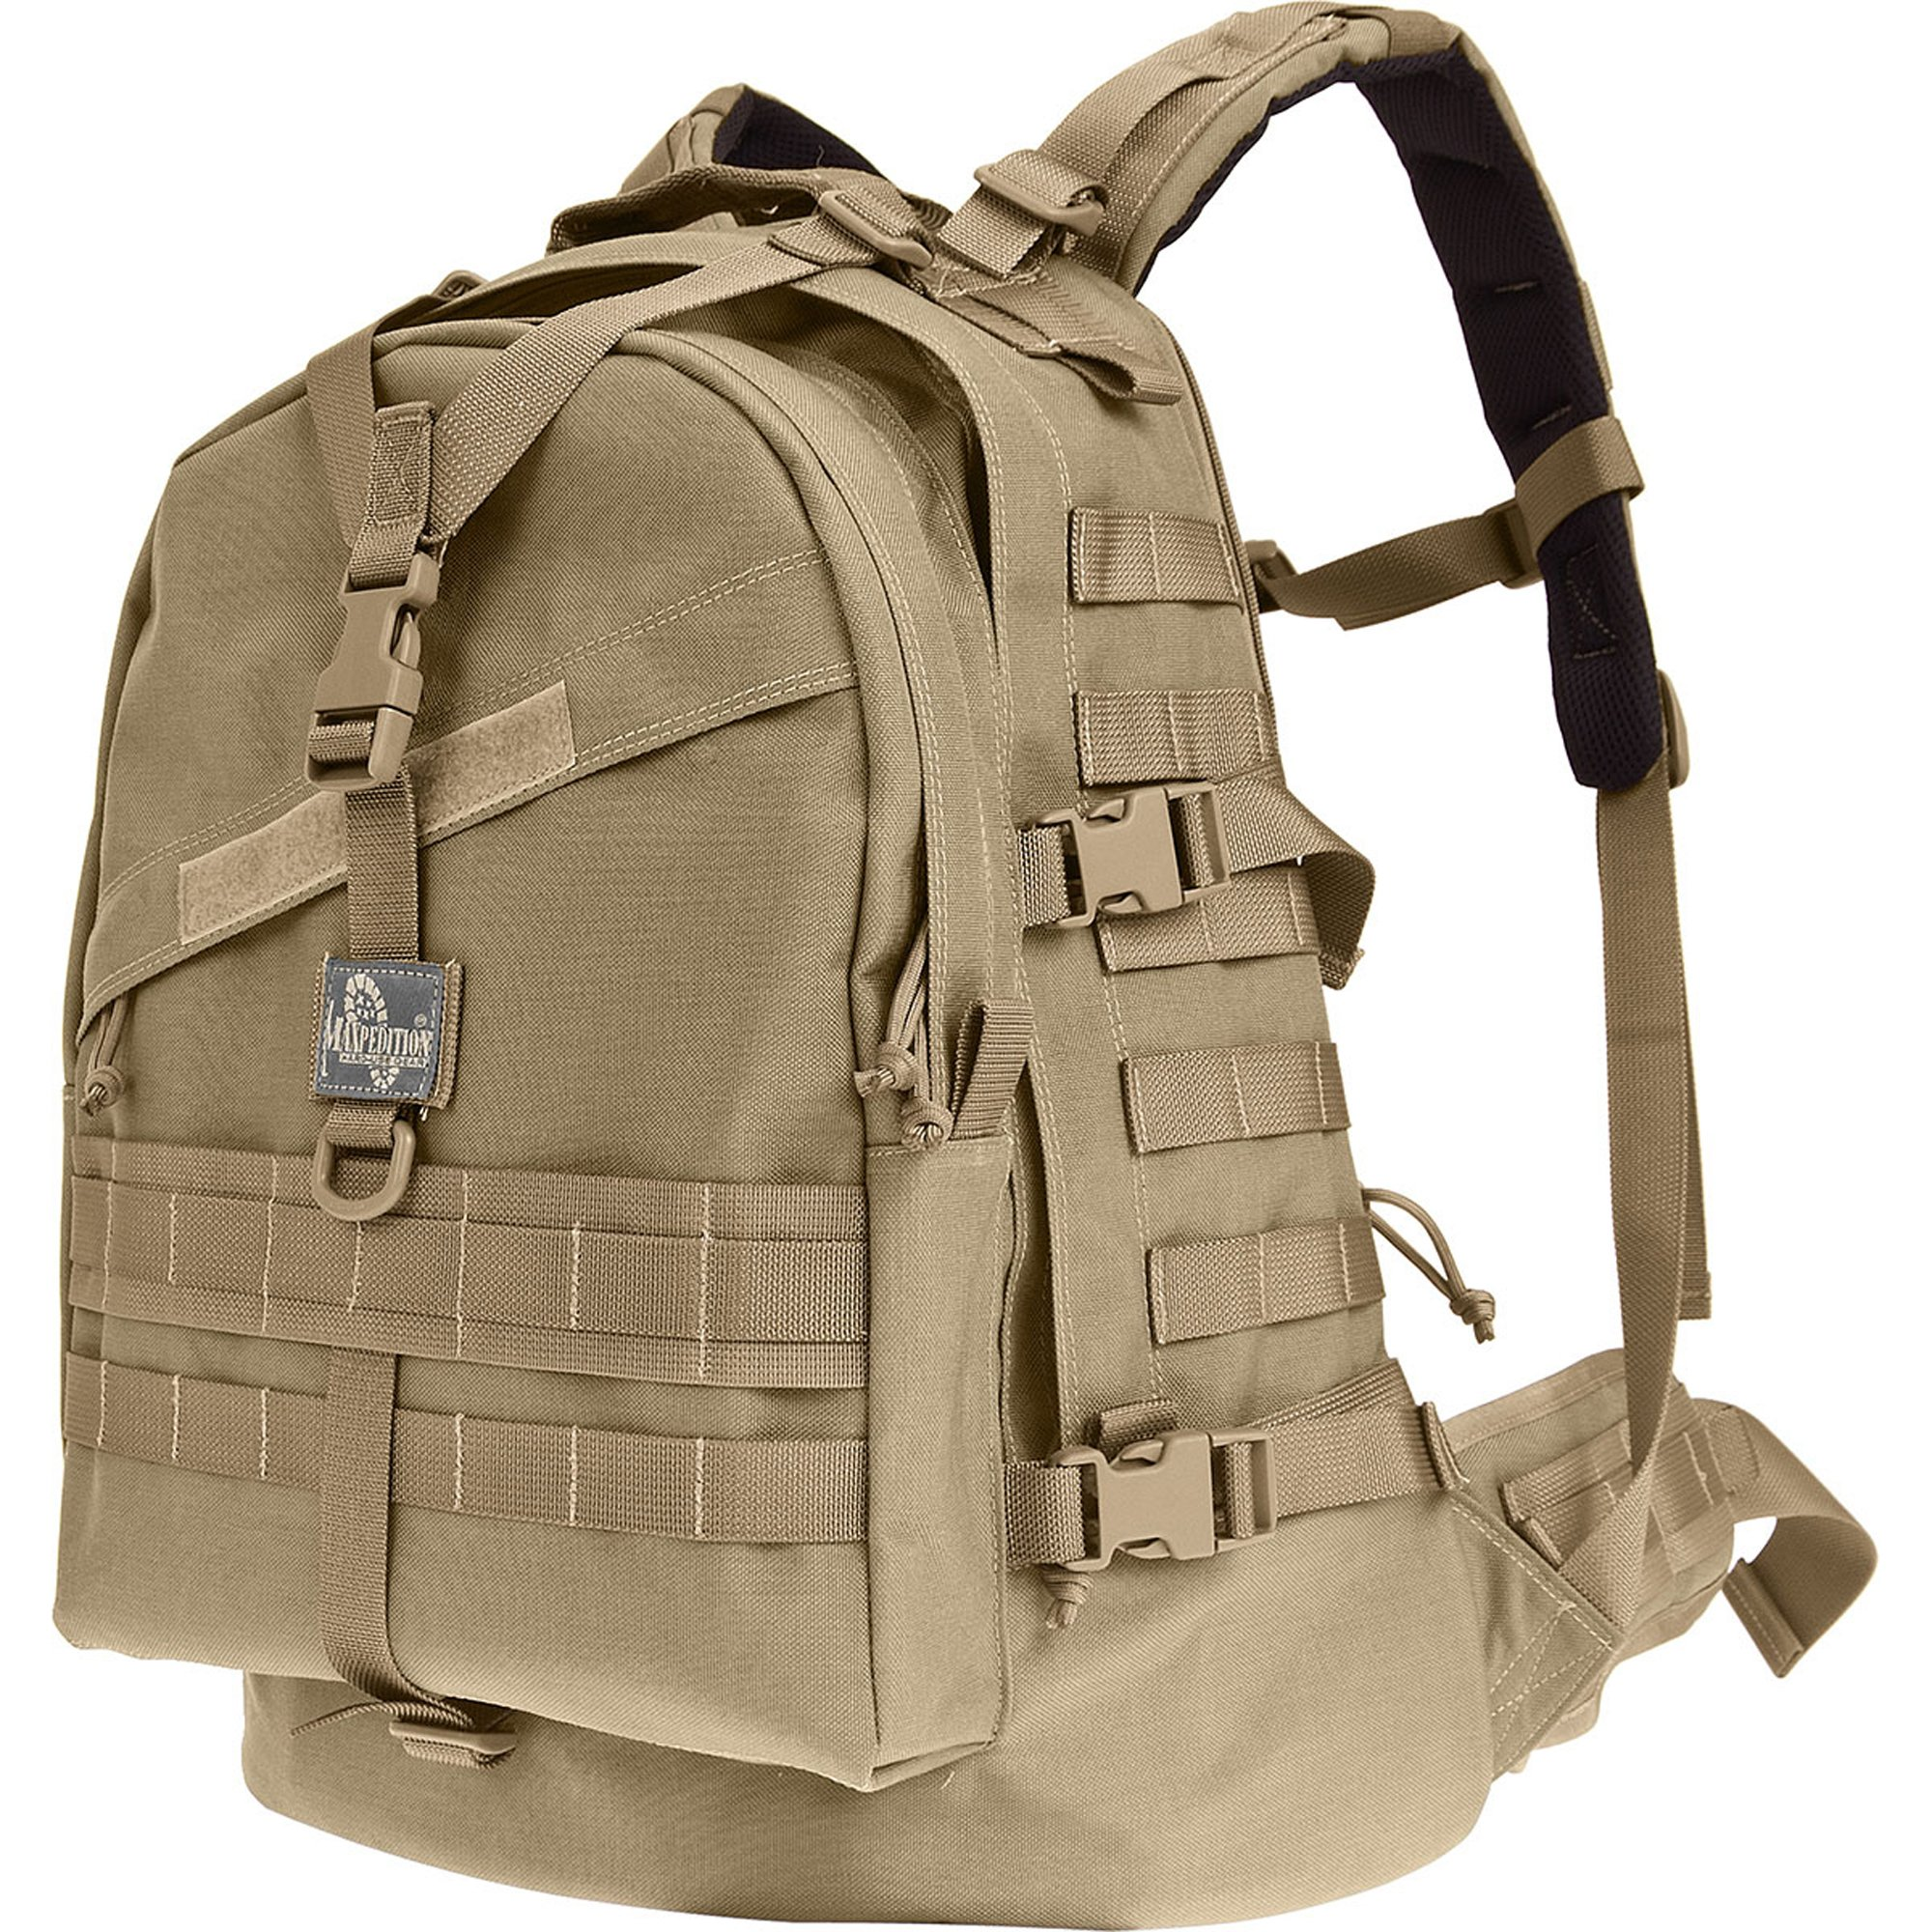 Maxpedition Vulture-Ii Backpack (Khaki)